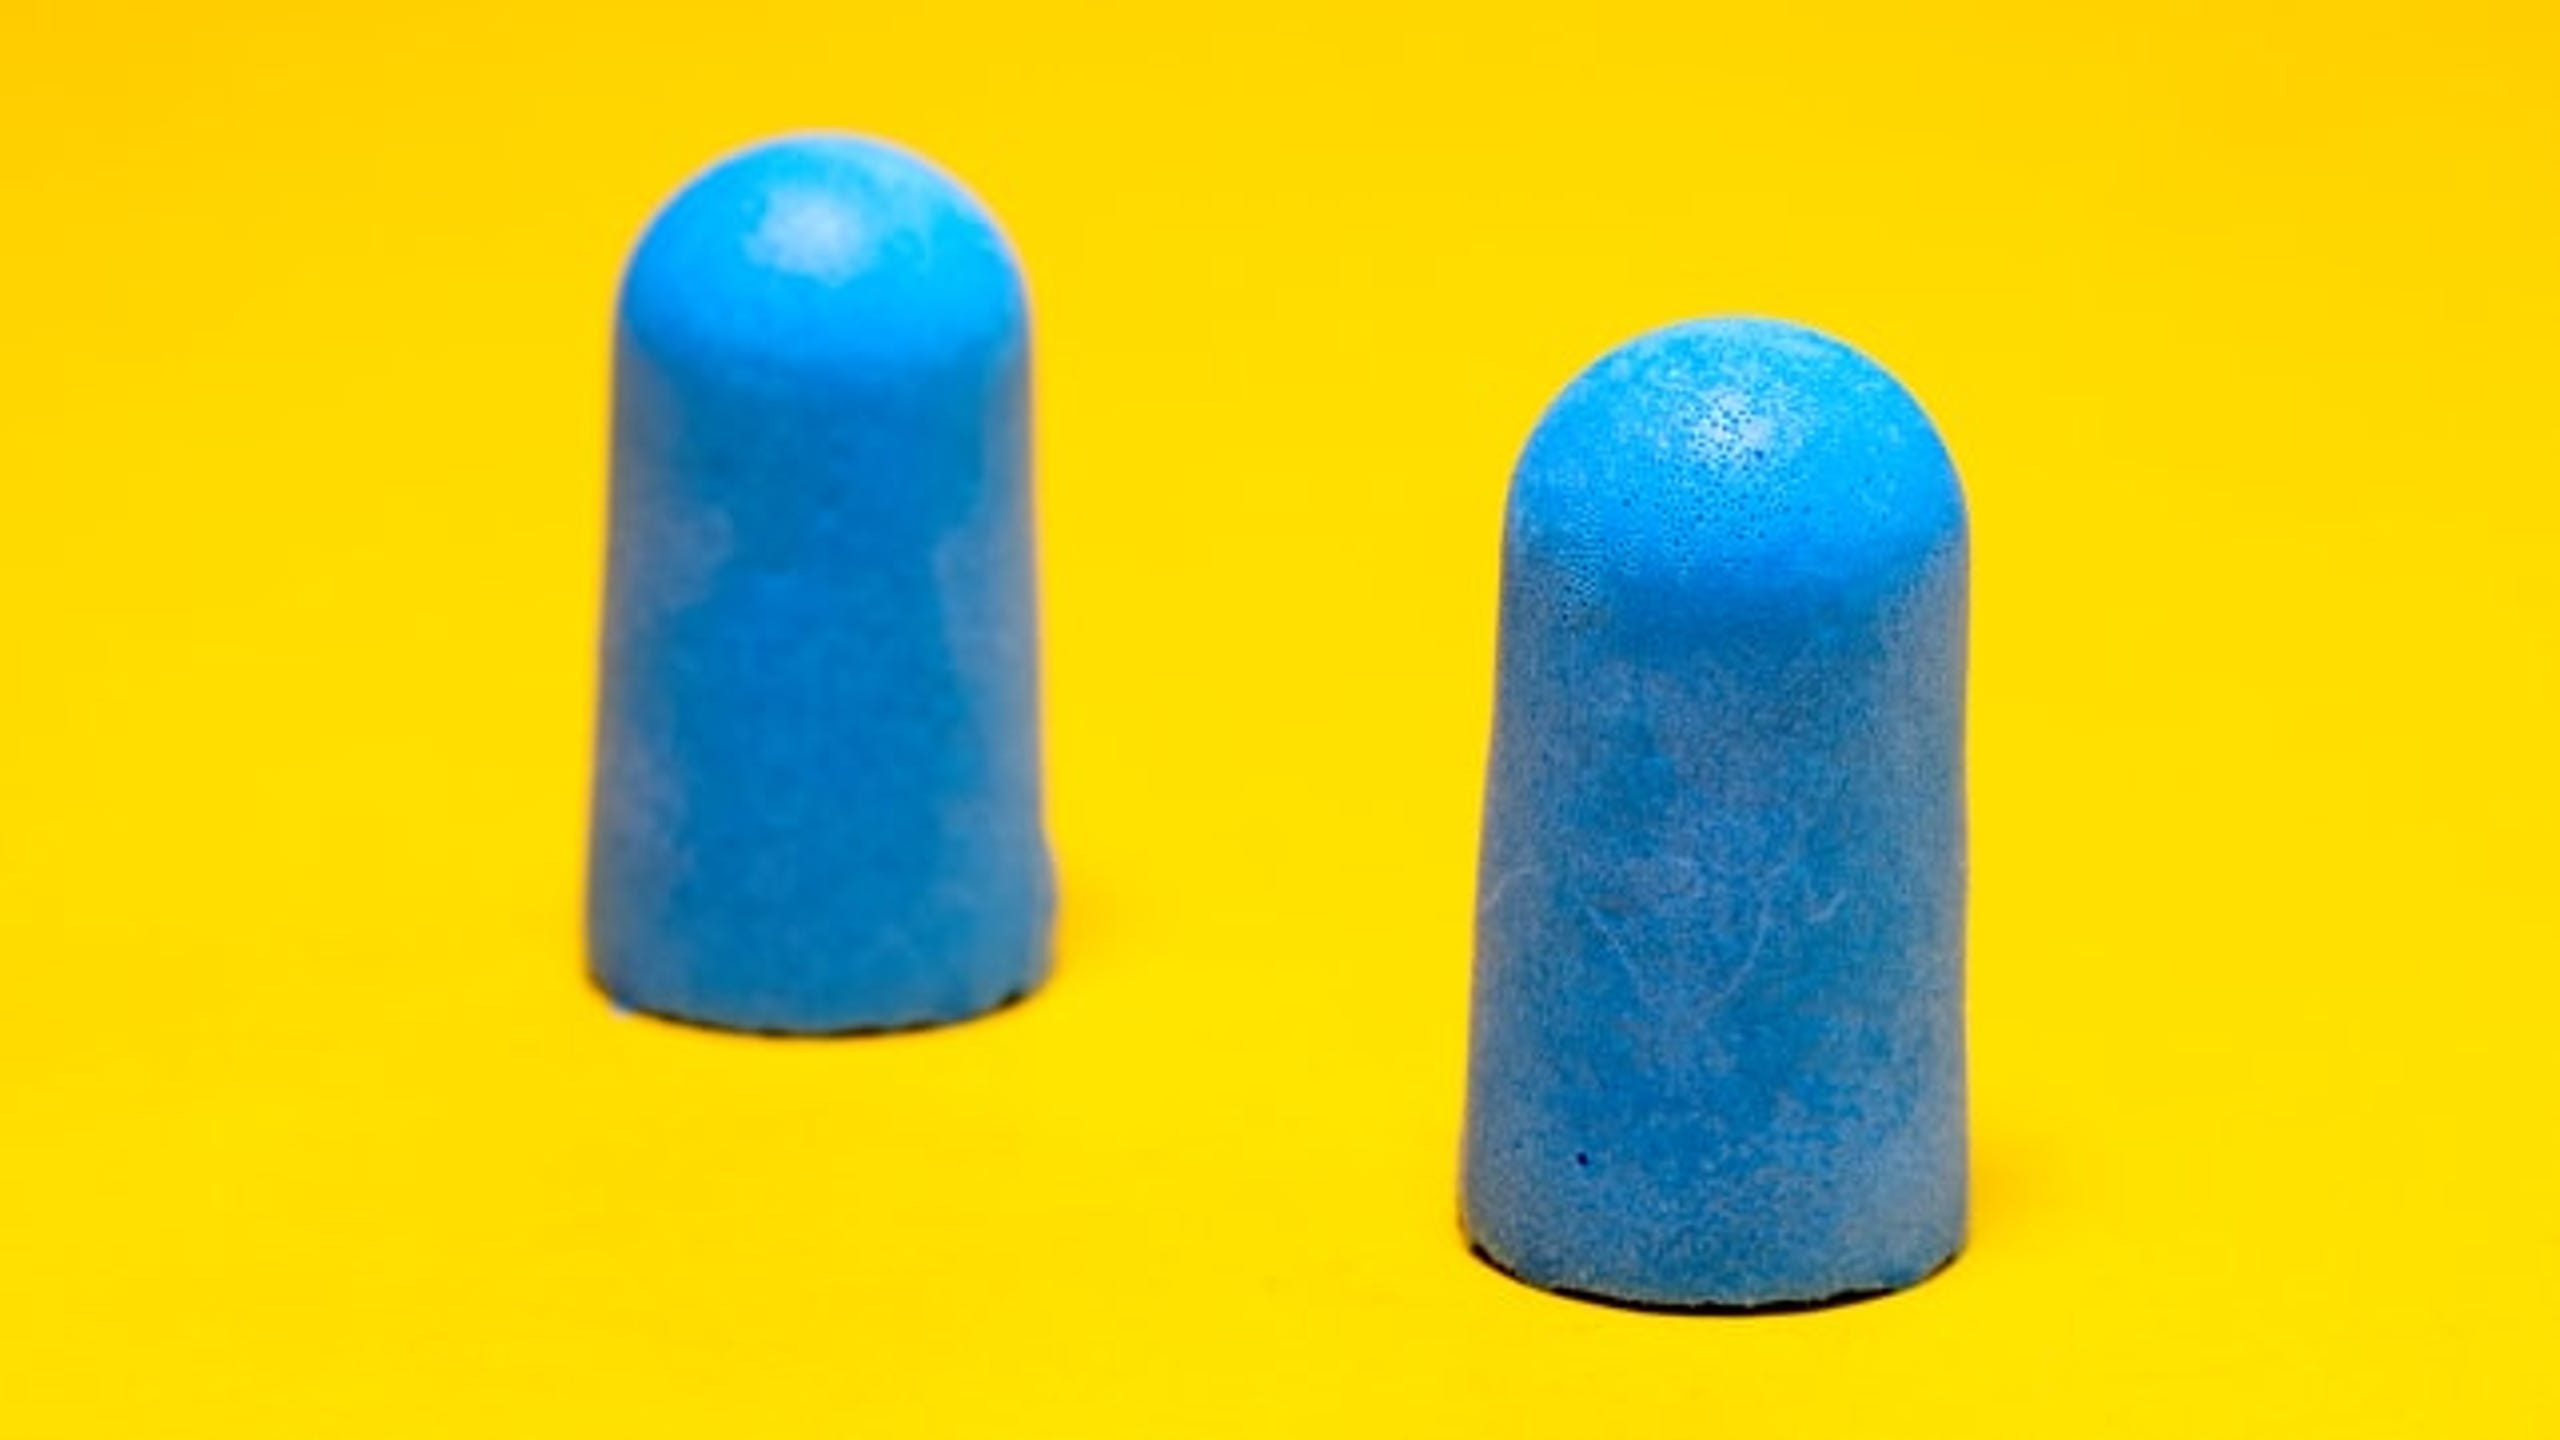 "One of the worst things when you're sick, or perfectly healthy, to be honest, is not being able to fall asleep. There always seems to be something distracting happening around you, so it&rsquo;s always a good idea to have some earplugs lying around. These are the best&nbsp;<a href=""https://www.reviewed.com/home-outdoors/best-right-now/the-best-earplugs-for-sleeping?utm_source=usat&amp;utm_medium=referral&amp;utm_campaign=collab"" target=""_blank"">pair of ear plugs</a>&nbsp;we've tried, as they strike the perfect balance between blocking sound while still being ultra comfortable. (<strong><a href=""https://www.amazon.com/Hearos-Plugs-Xtreme-Protection-pairs/dp/B000NP79YM/ref=as_li_ss_tl?ie=UTF8&amp;linkCode=ll1&amp;tag=usatgallery-20&amp;linkId=98b97c9d4d6fcda1ce51a7337e493632&amp;language=en_US"" target=""_blank"">$7.98 on Amazon</a></strong>)"